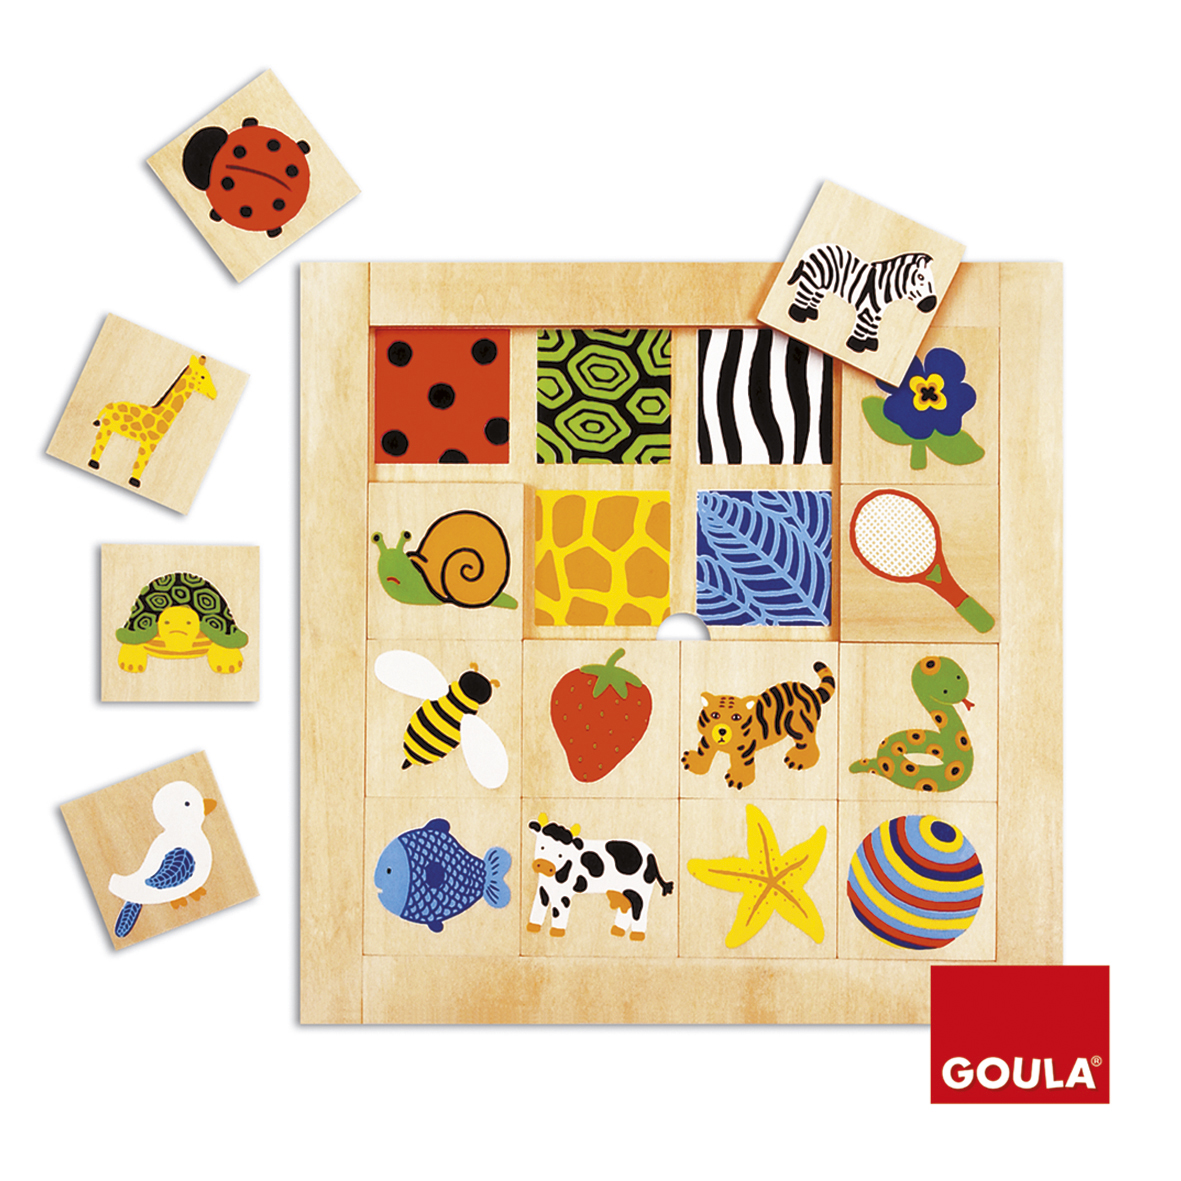 Goula Puzzle Texture Puzzle sold by Gifts for little hands